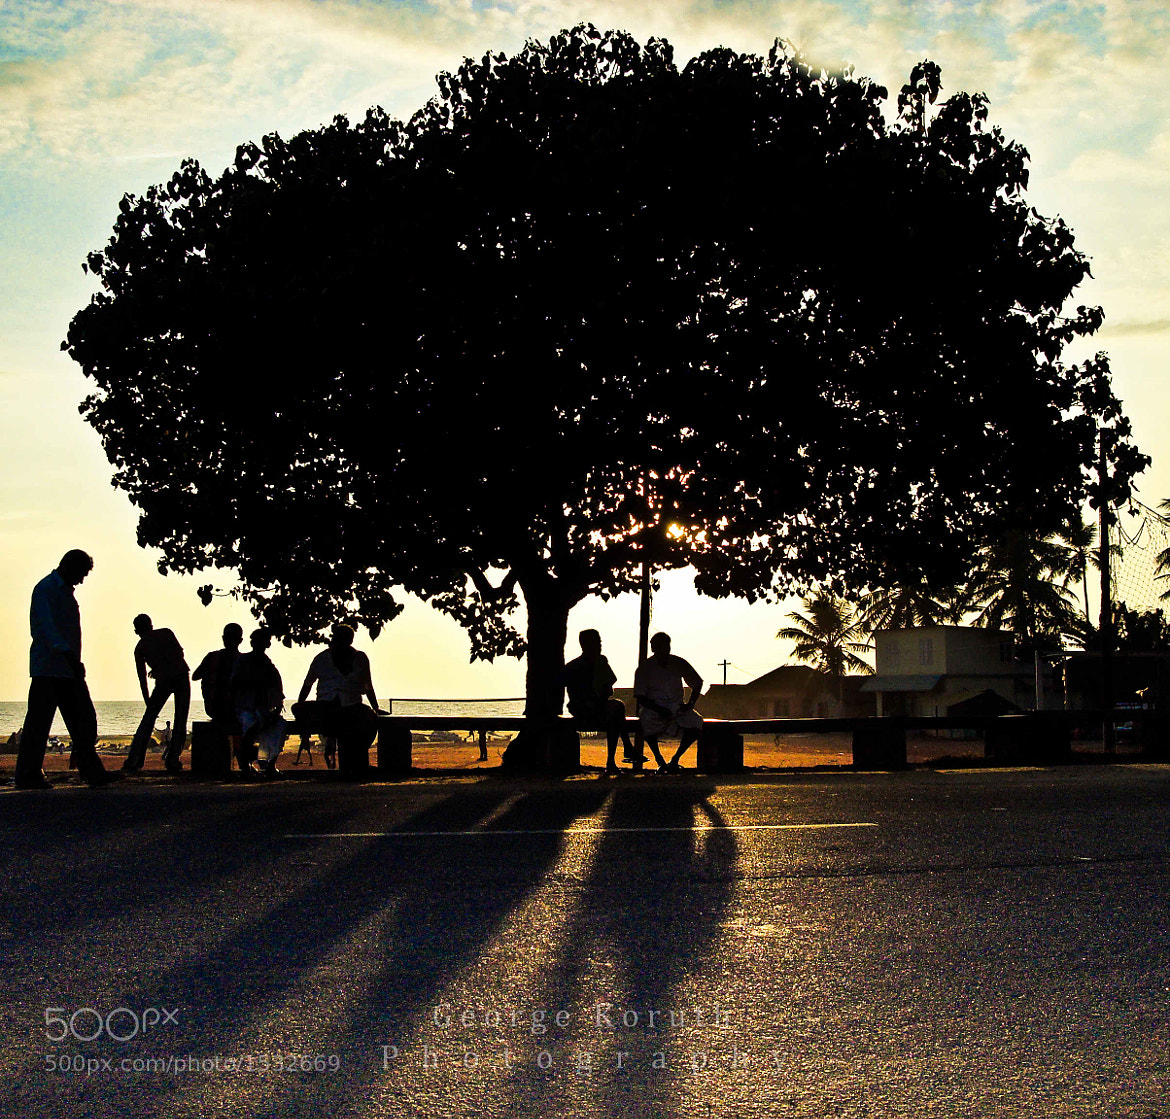 Photograph Tree of Life by George Koruth - fotobaba on 500px